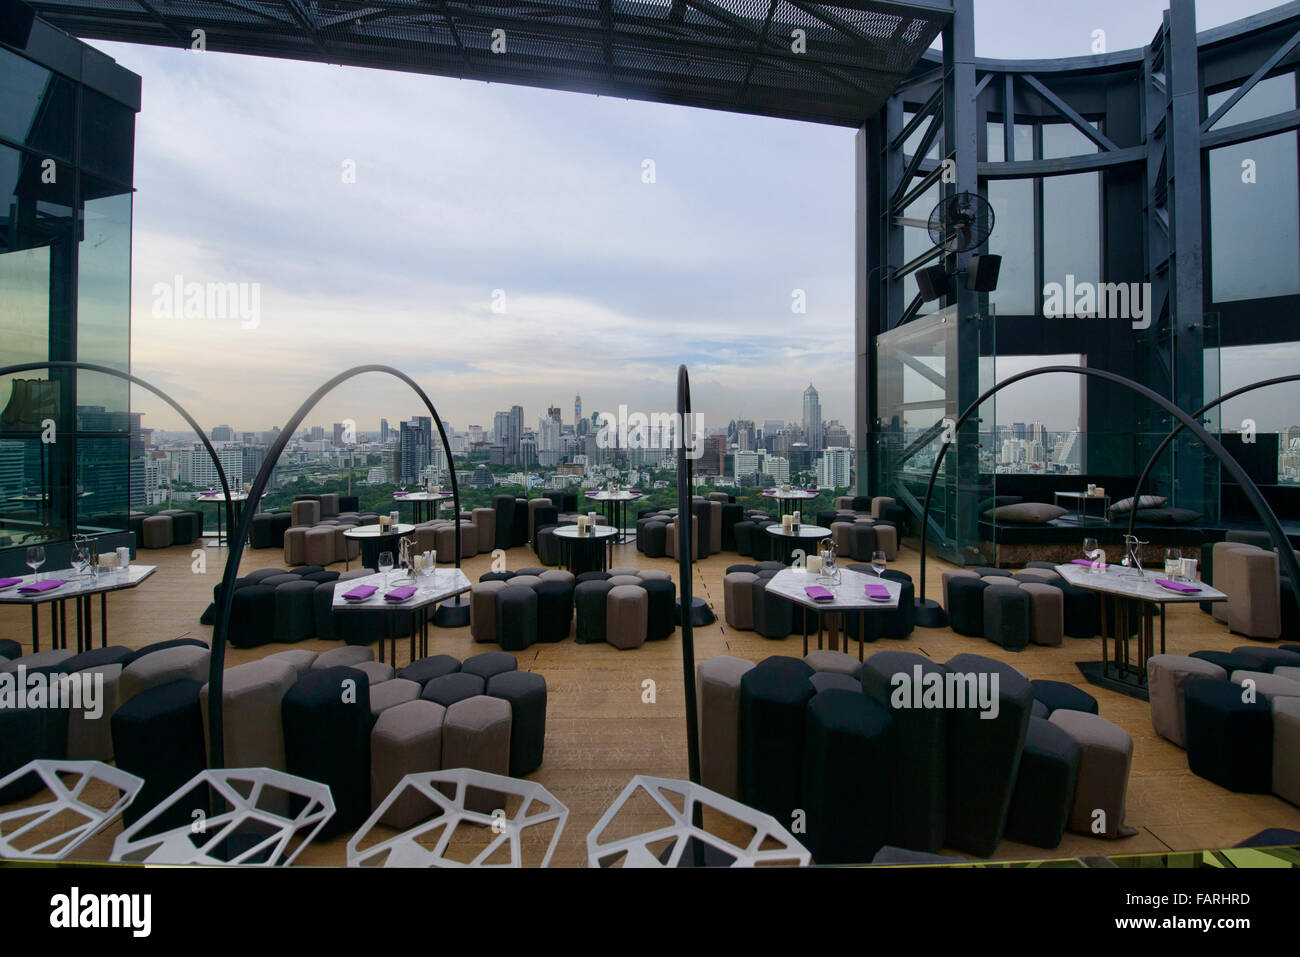 City view from a cool sky bar in Bangkok, Thailand - Stock Image